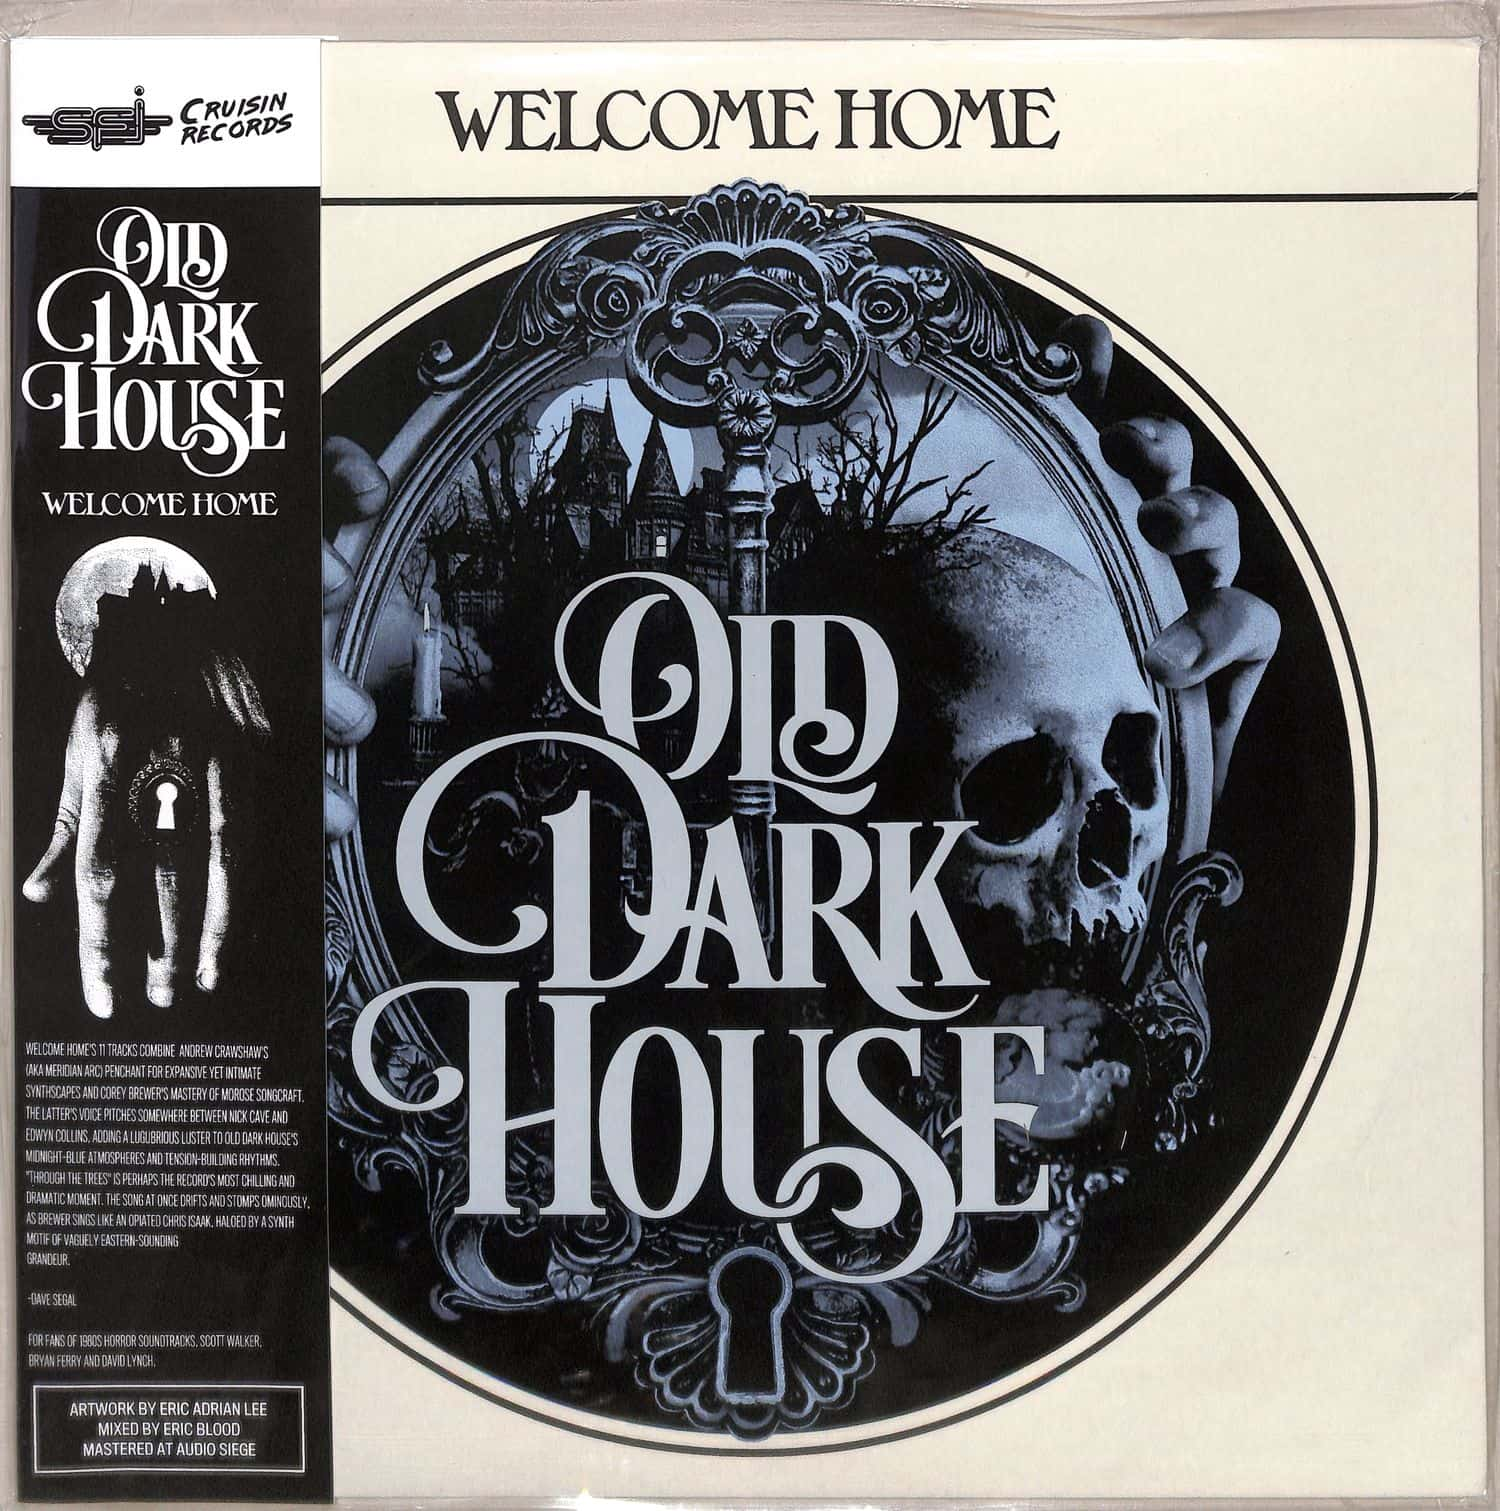 Old Dark House - WELCOME HOME